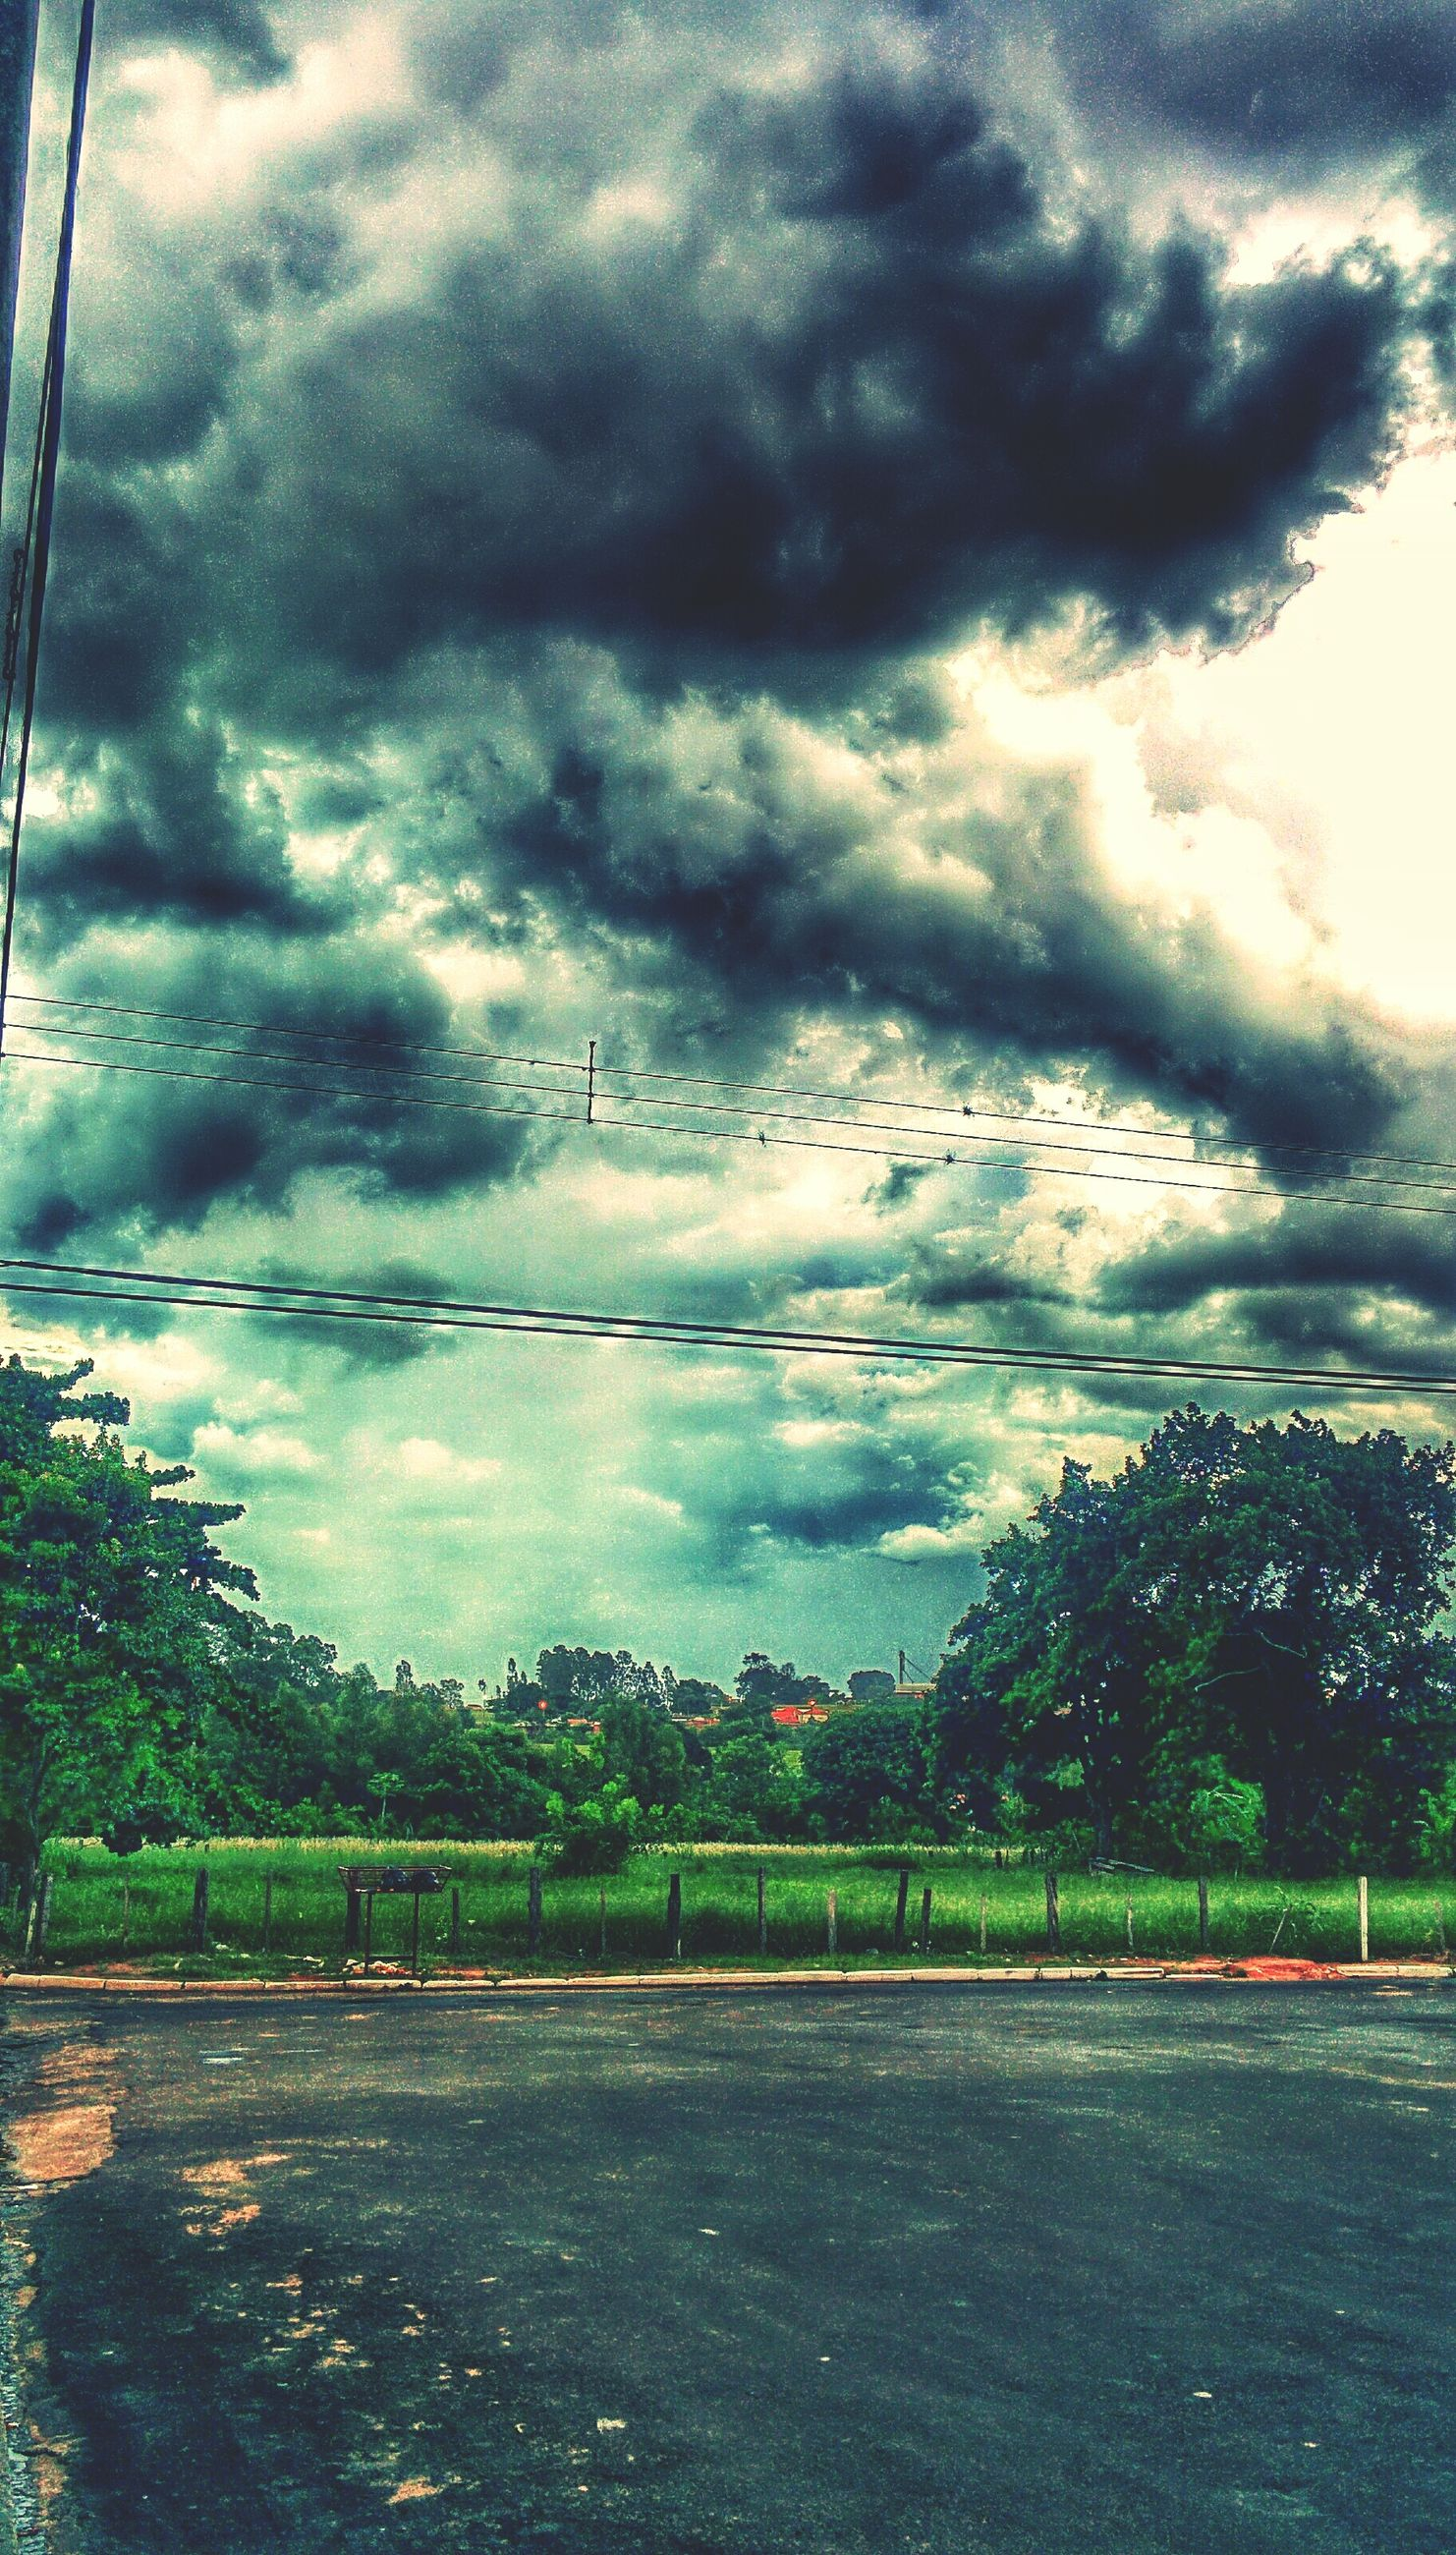 sky, cloud - sky, cloudy, weather, overcast, storm cloud, road, tranquil scene, tranquility, cloud, scenics, tree, landscape, nature, beauty in nature, field, dramatic sky, the way forward, transportation, street